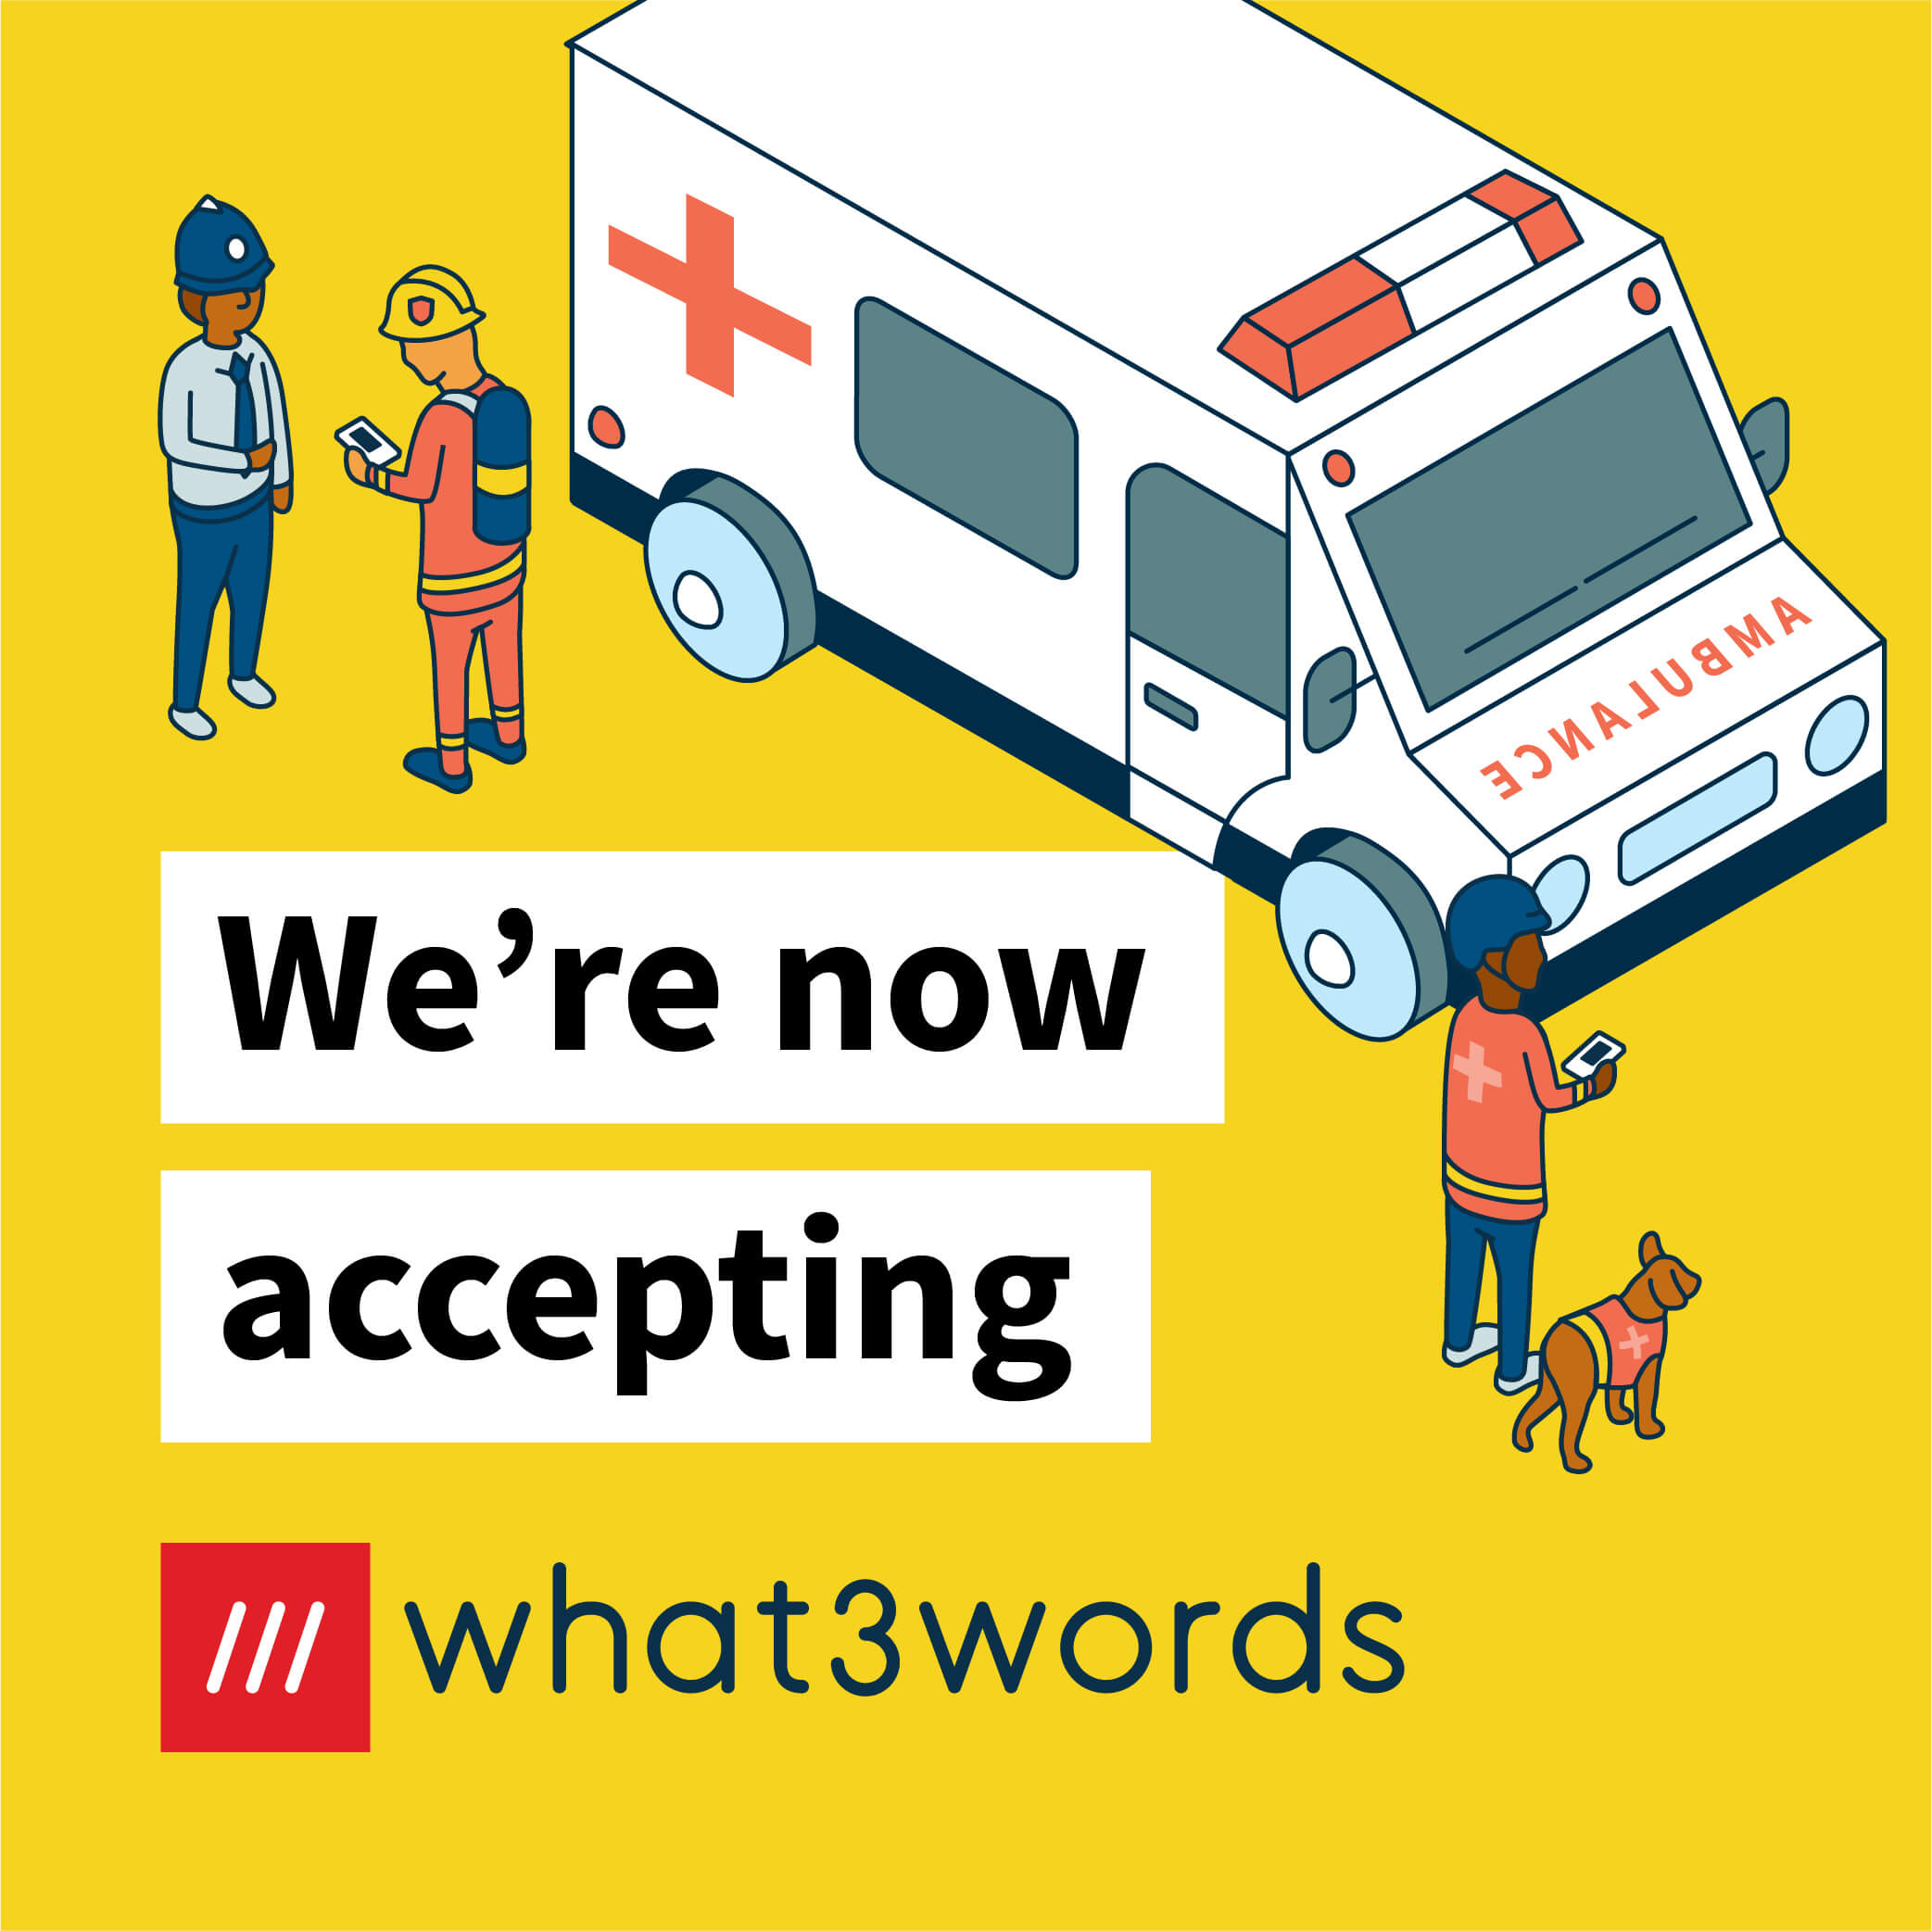 Now accepting what3words social post for emergency services - yellow